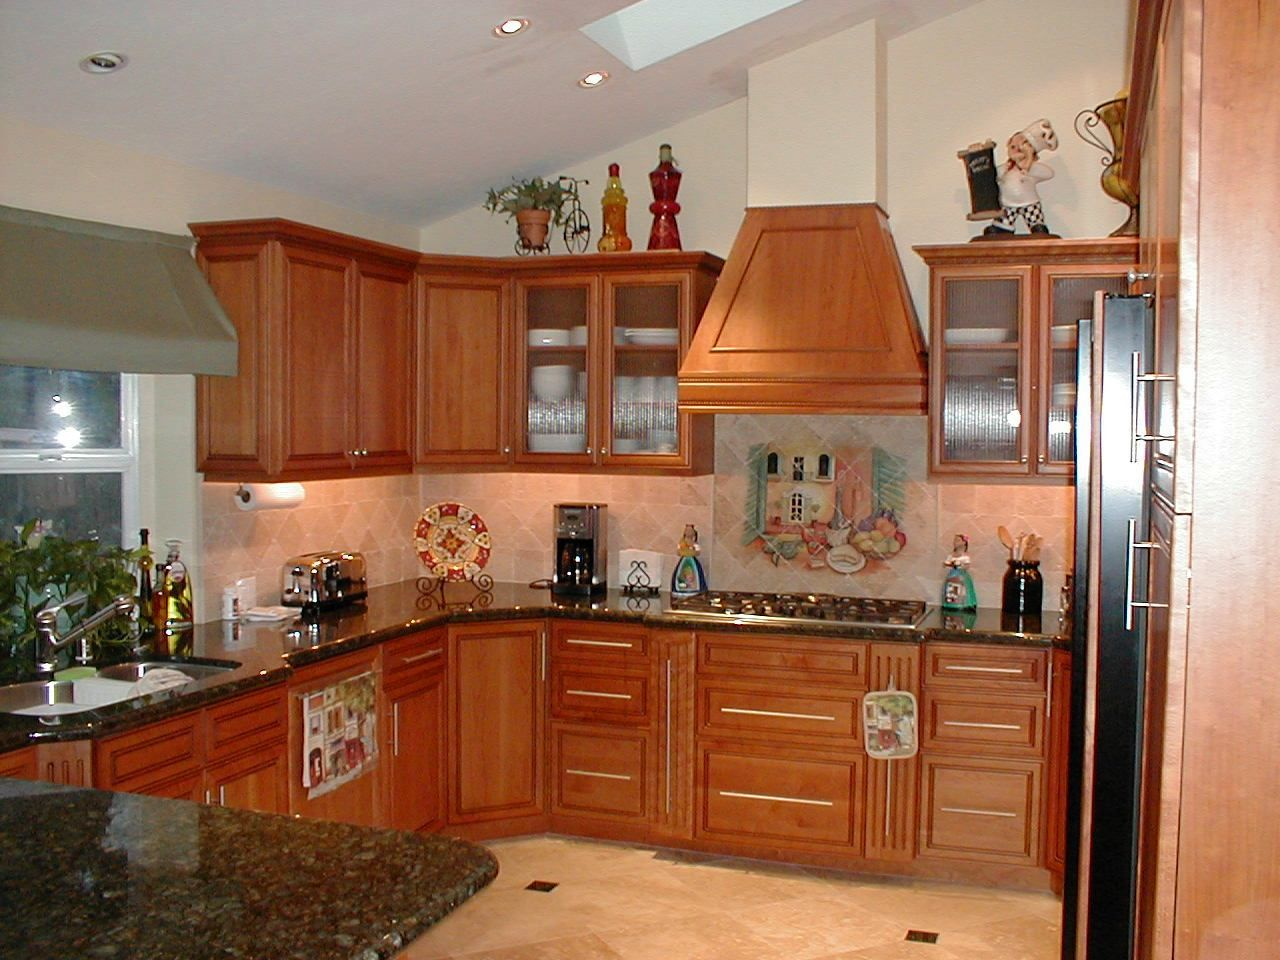 To Remodel A Kitchen Kitchen Remodel Images Kitchen Remodeling Portfolio Double Click